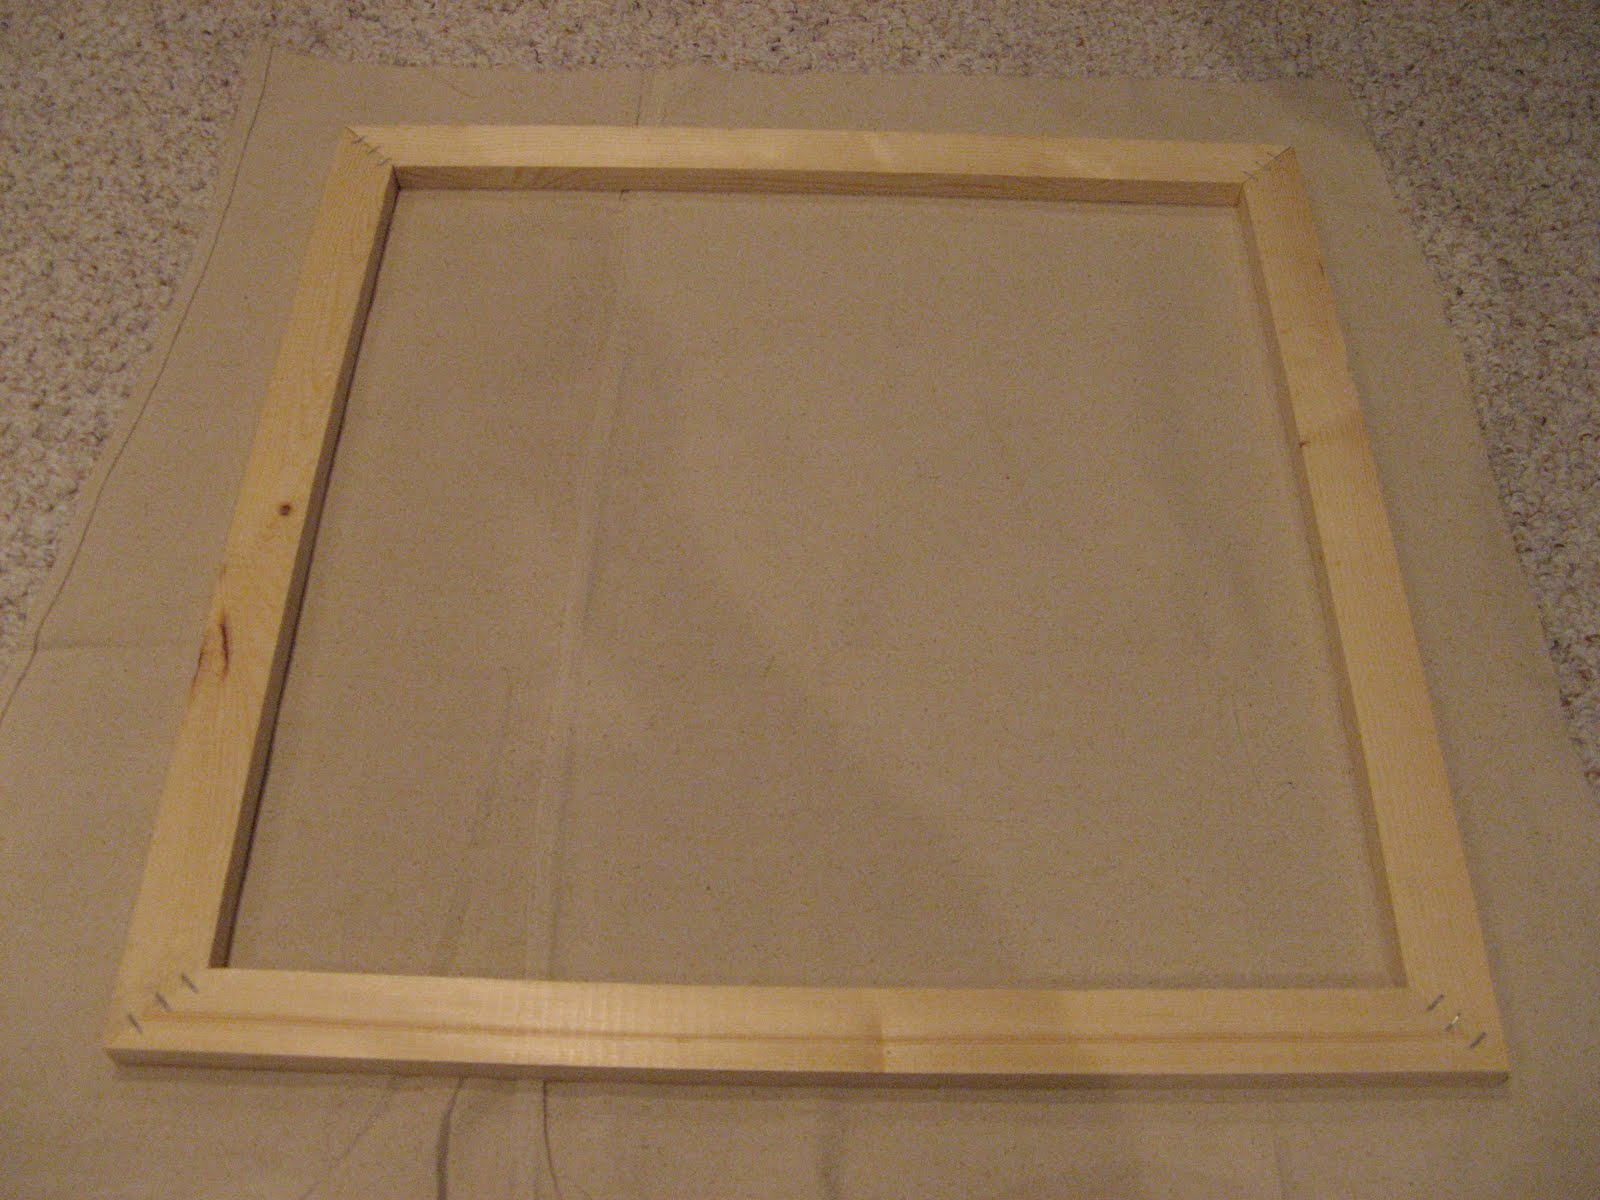 How To Make Your Own Canvas Frame The Chic Prof